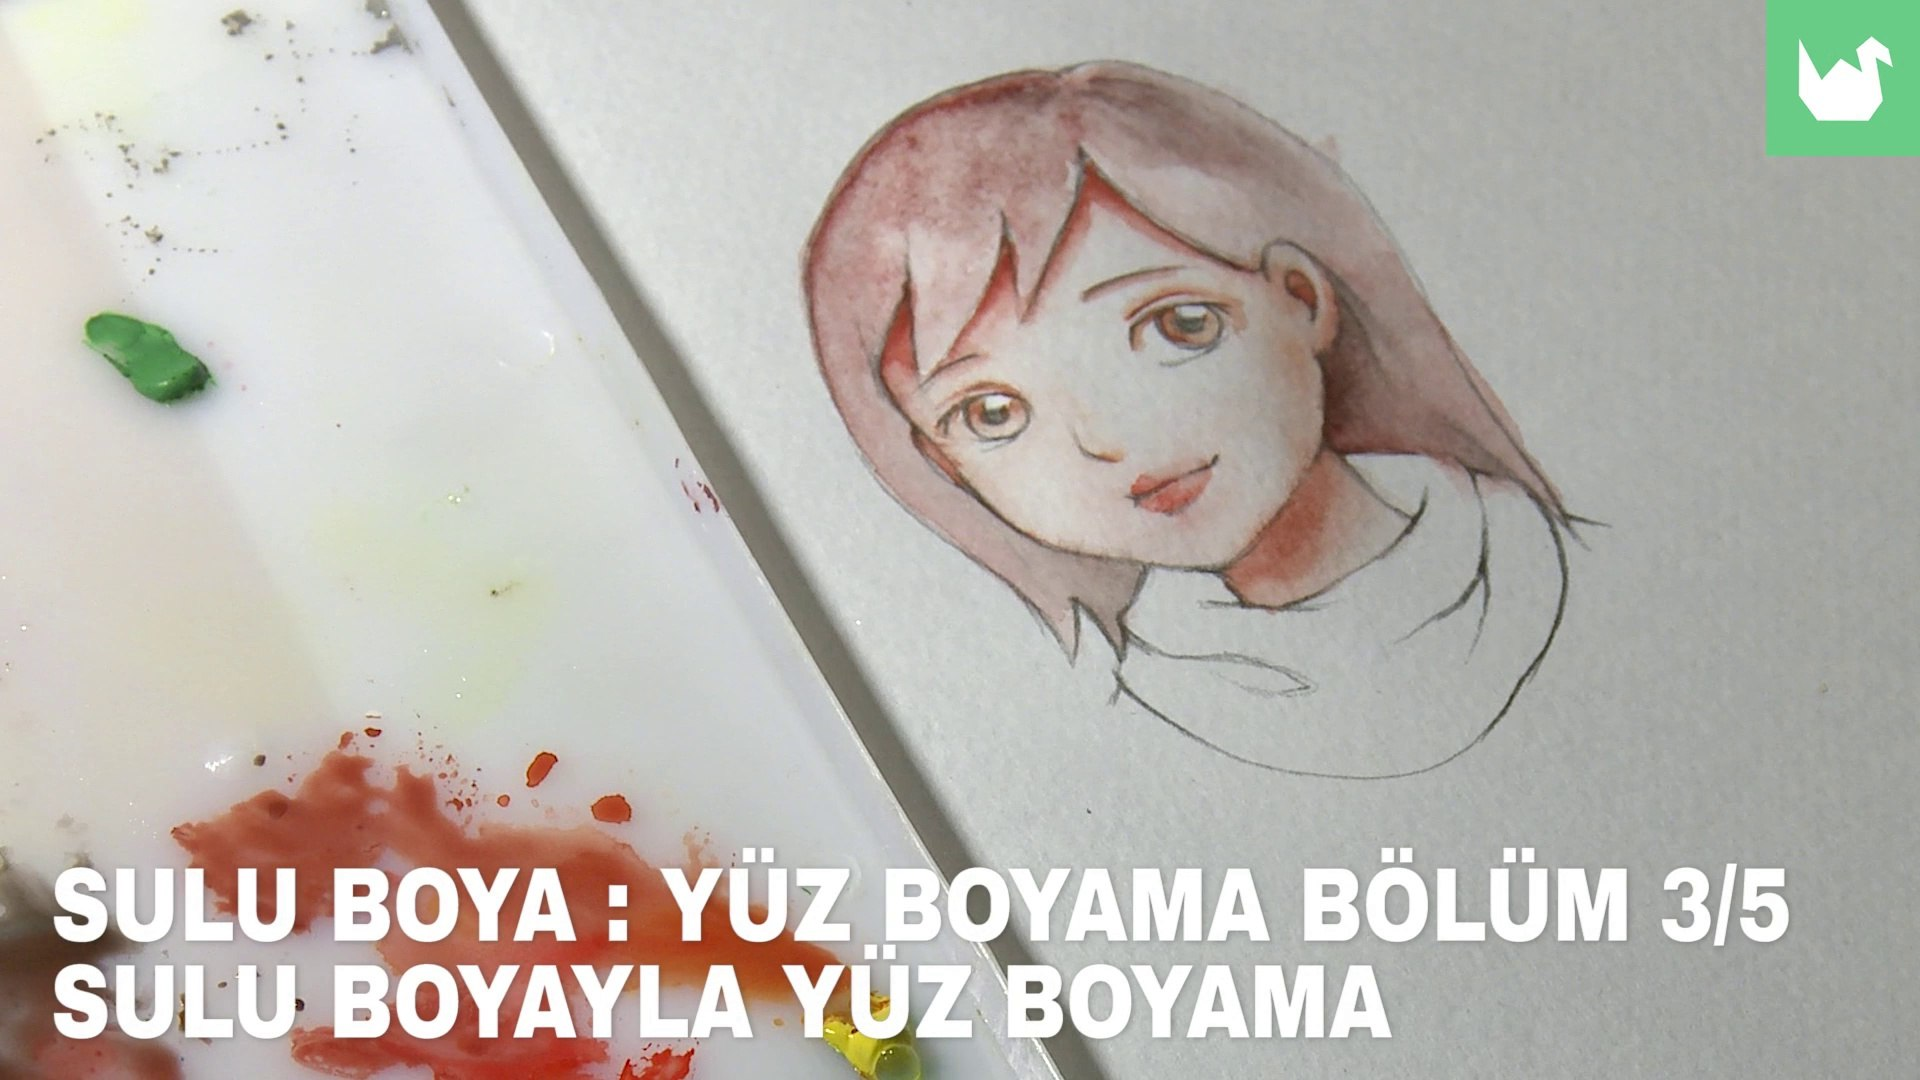 Sulu Boya Yuz Boyama 3 5 Boyama Video Dailymotion